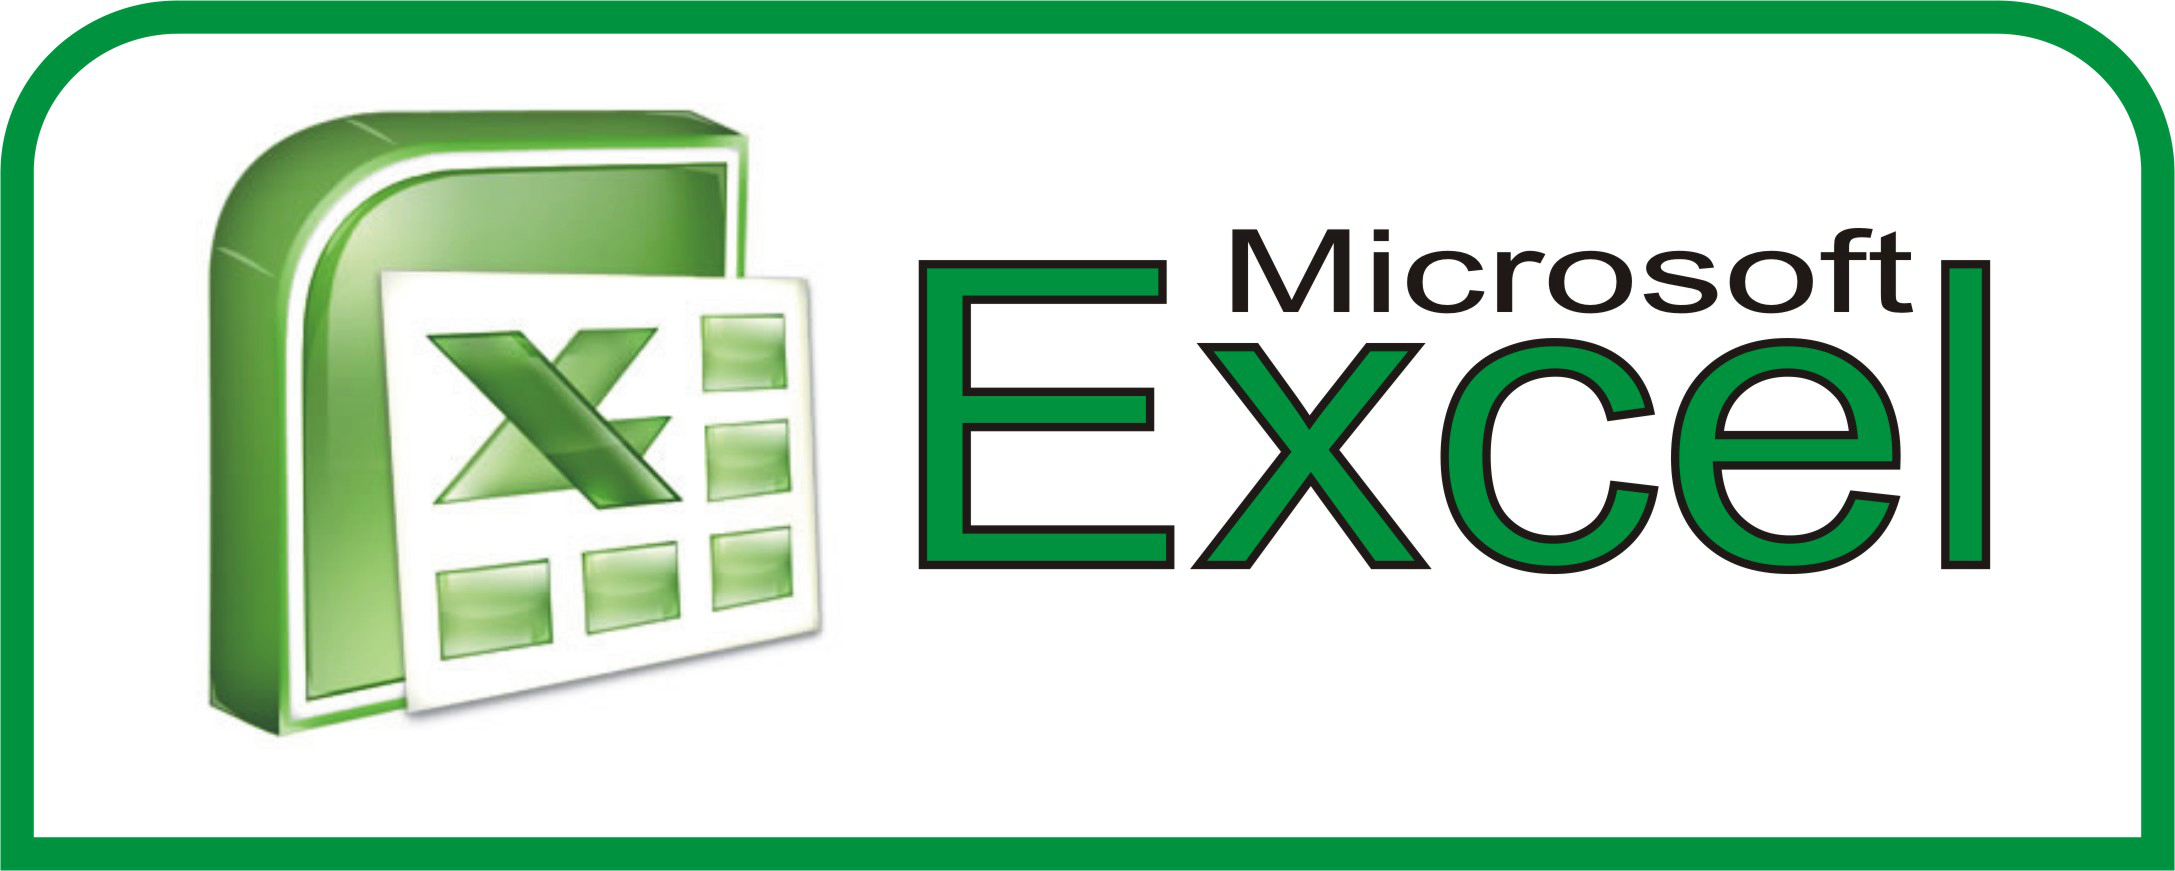 Ediblewildsus  Surprising  Excel Shortcuts You Probably Didnt Know About  Techdissected With Hot Excel Written Test Besides Modules In Excel Vba Furthermore Sorting Random Numbers In Excel With Delightful Winn Excel Grips Also Profit And Loss Statement Format In Excel In Addition Copy From Pdf To Excel And Excel Finance Company As Well As Microsoft Excel Prove It Test Additionally Salesforce Excel Connector  From Techdissectedcom With Ediblewildsus  Hot  Excel Shortcuts You Probably Didnt Know About  Techdissected With Delightful Excel Written Test Besides Modules In Excel Vba Furthermore Sorting Random Numbers In Excel And Surprising Winn Excel Grips Also Profit And Loss Statement Format In Excel In Addition Copy From Pdf To Excel From Techdissectedcom